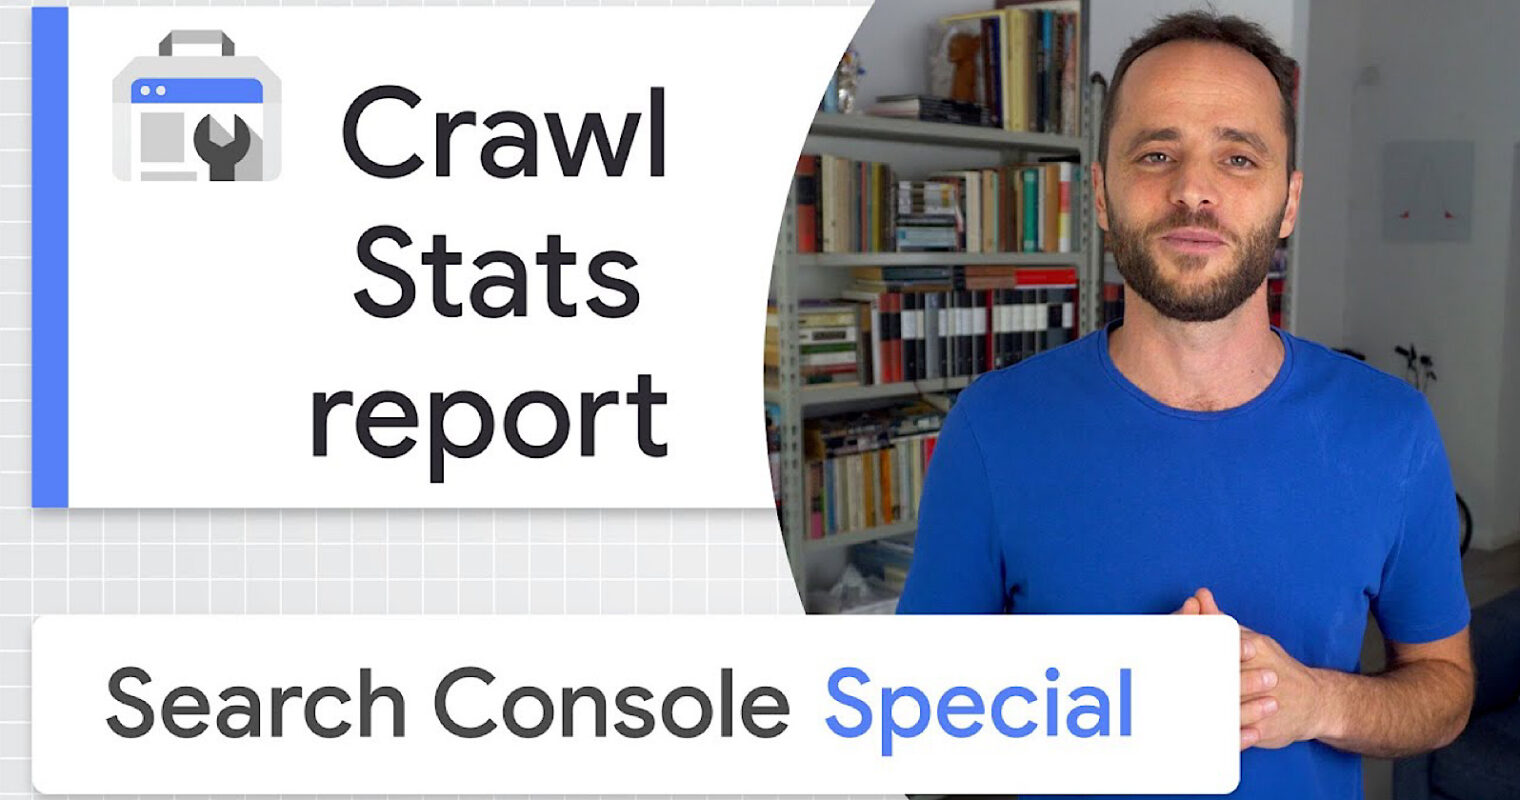 Google On How to Use Search Console's Crawl Stats Report